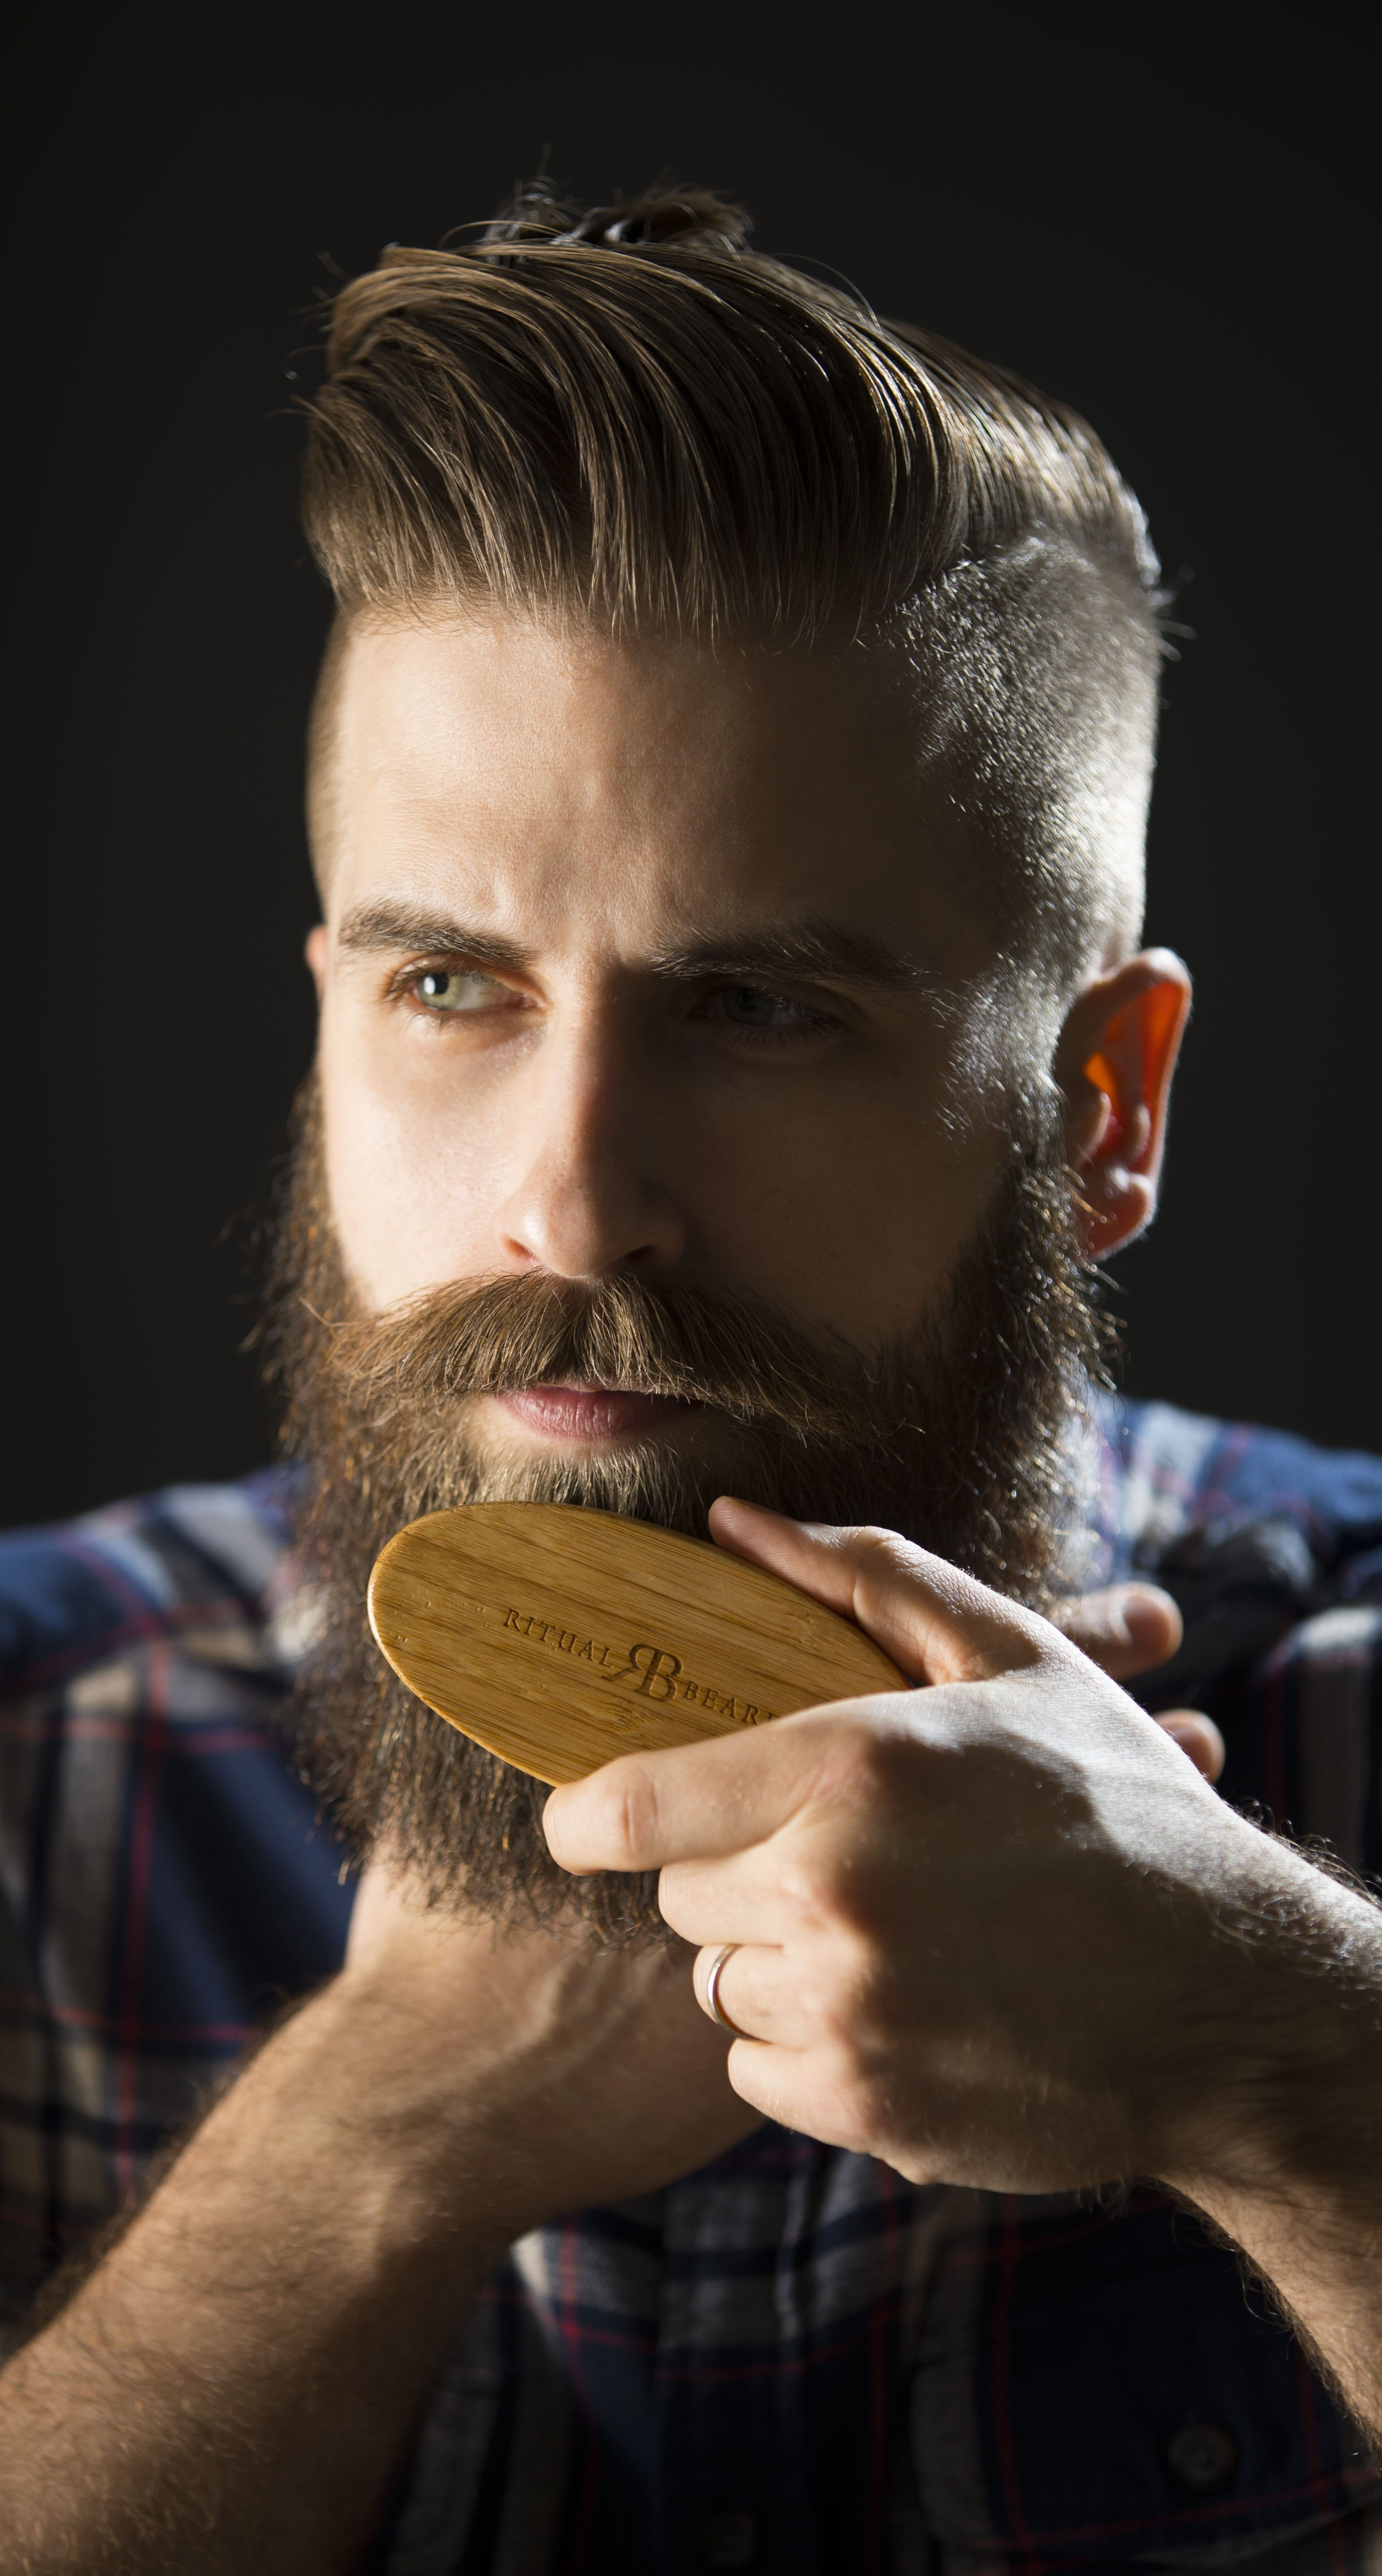 Boar Bristle Beard Brushes For Menhttps://images-na.ssl-images-amazon.com/images/I/71EF5LLgcpL._SL1500_.jpg